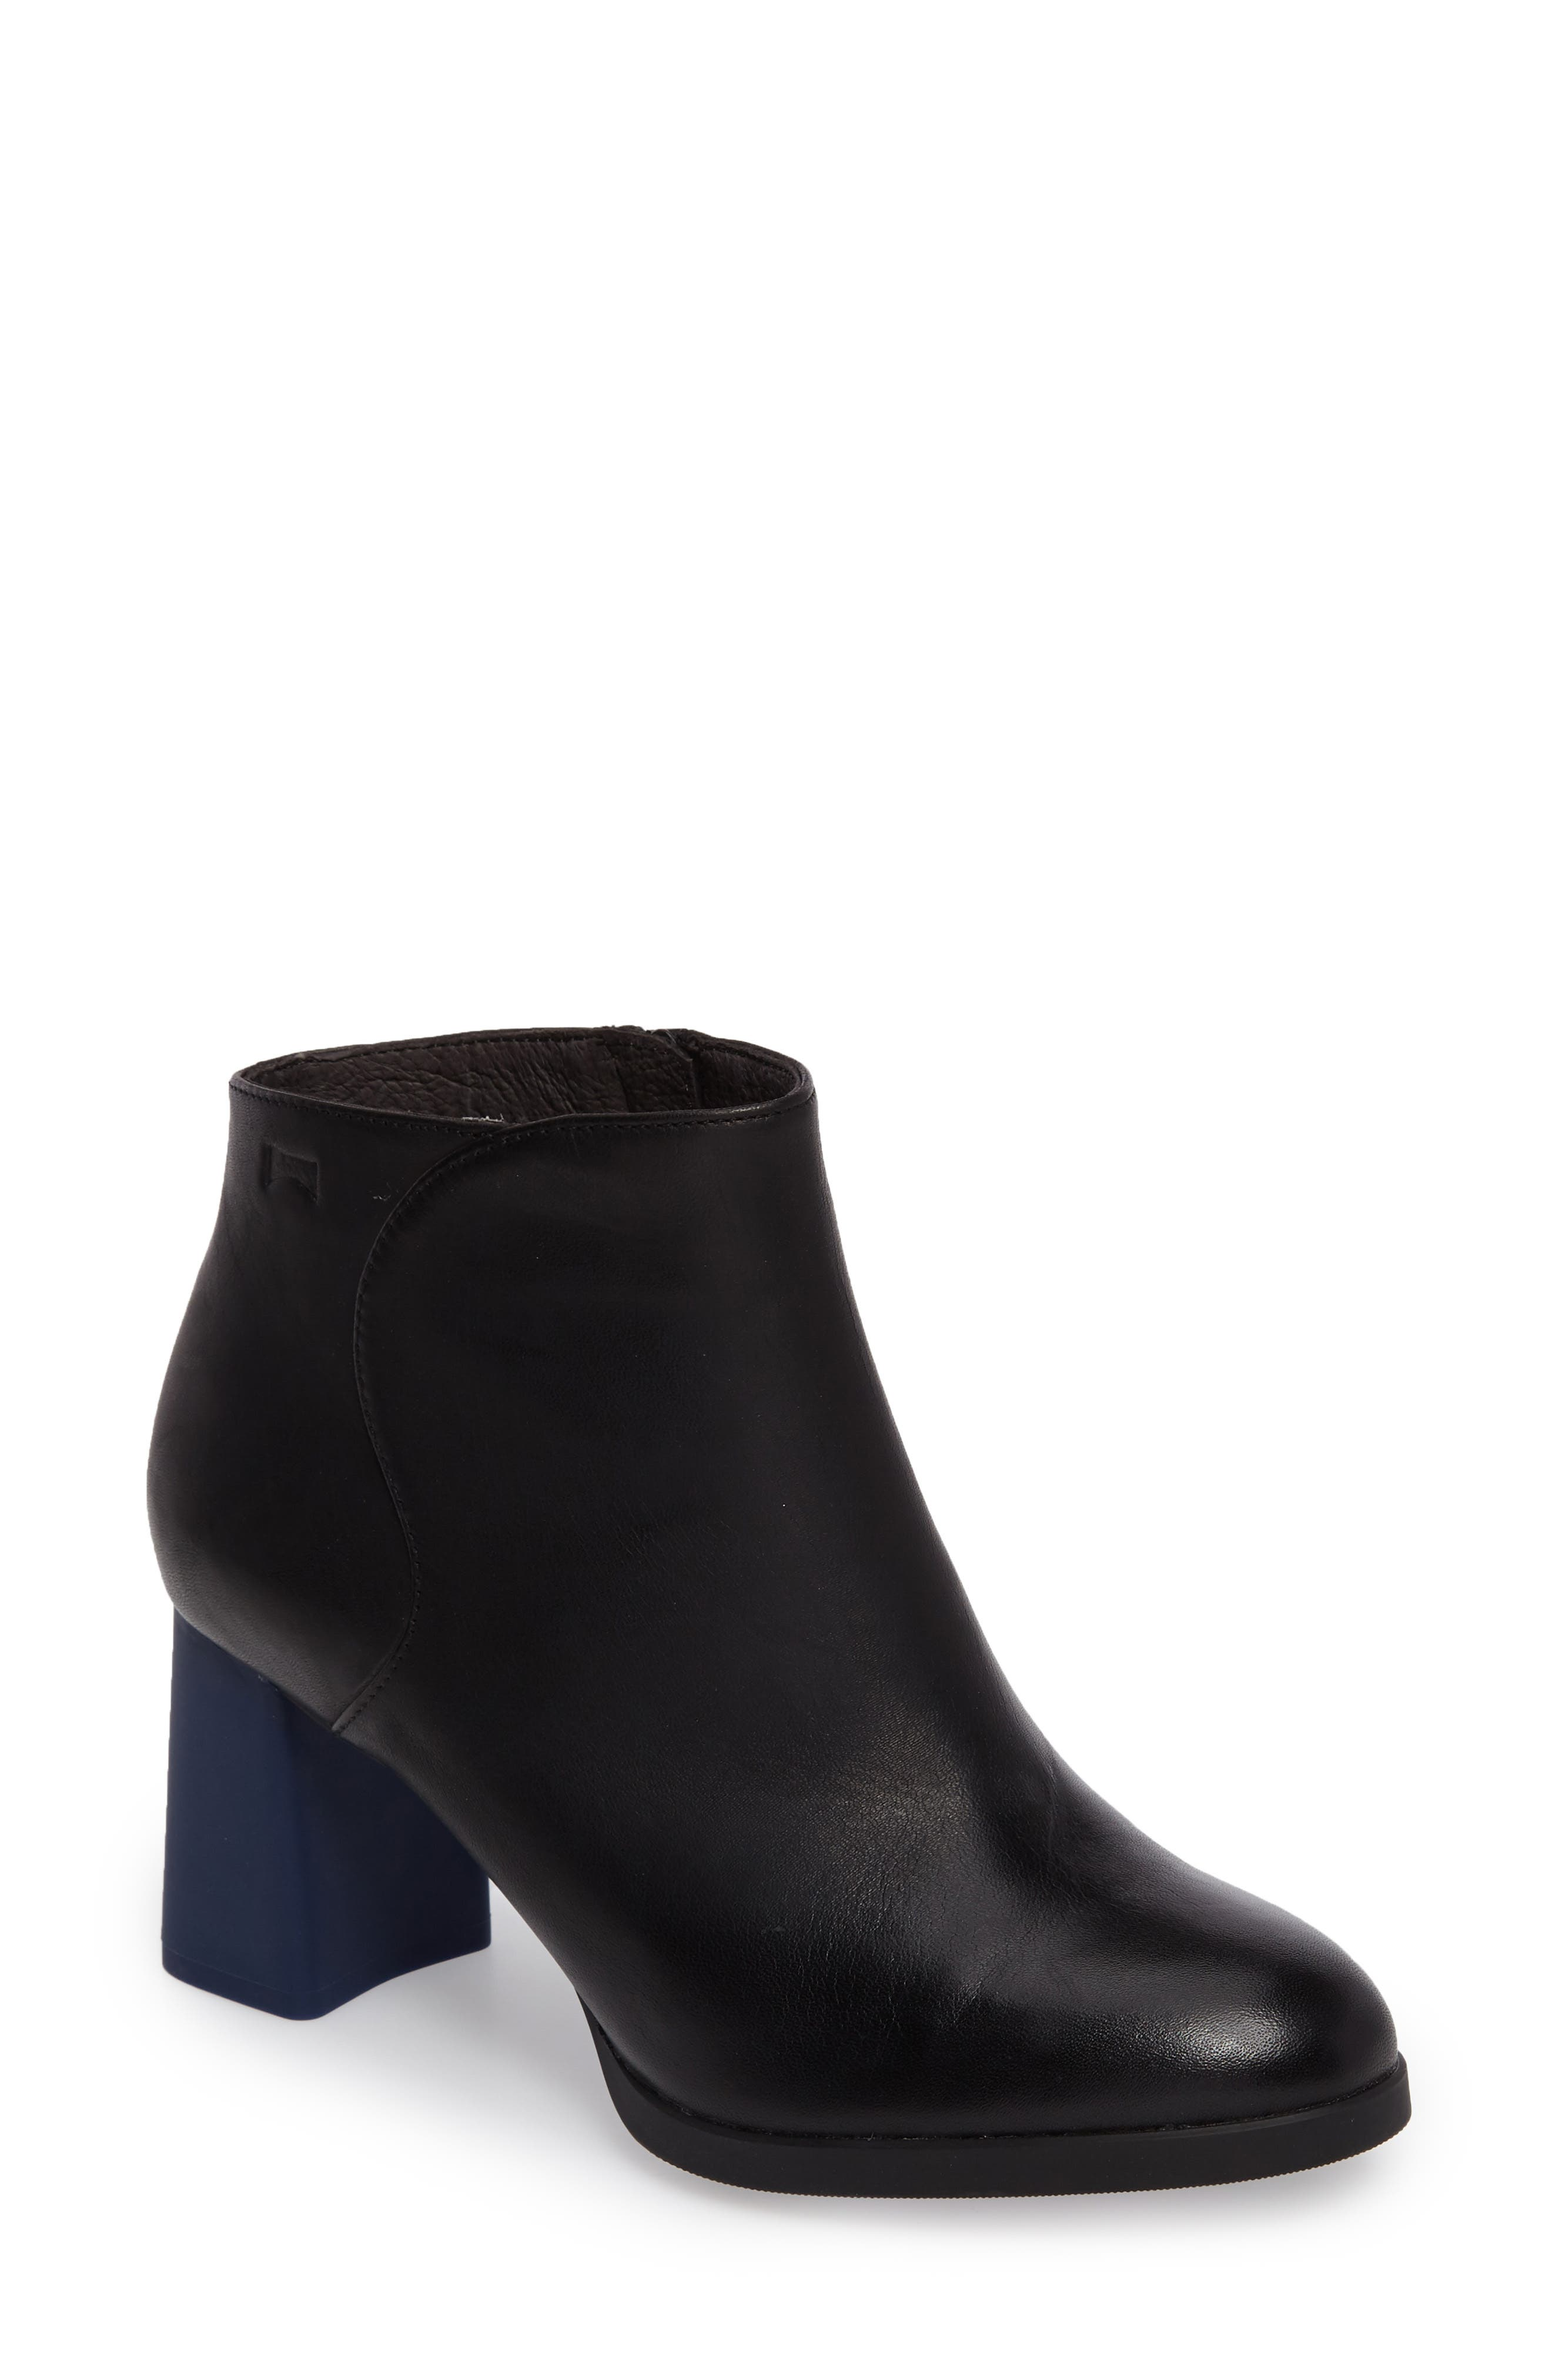 Kara Flared Heel Bootie,                             Main thumbnail 1, color,                             001